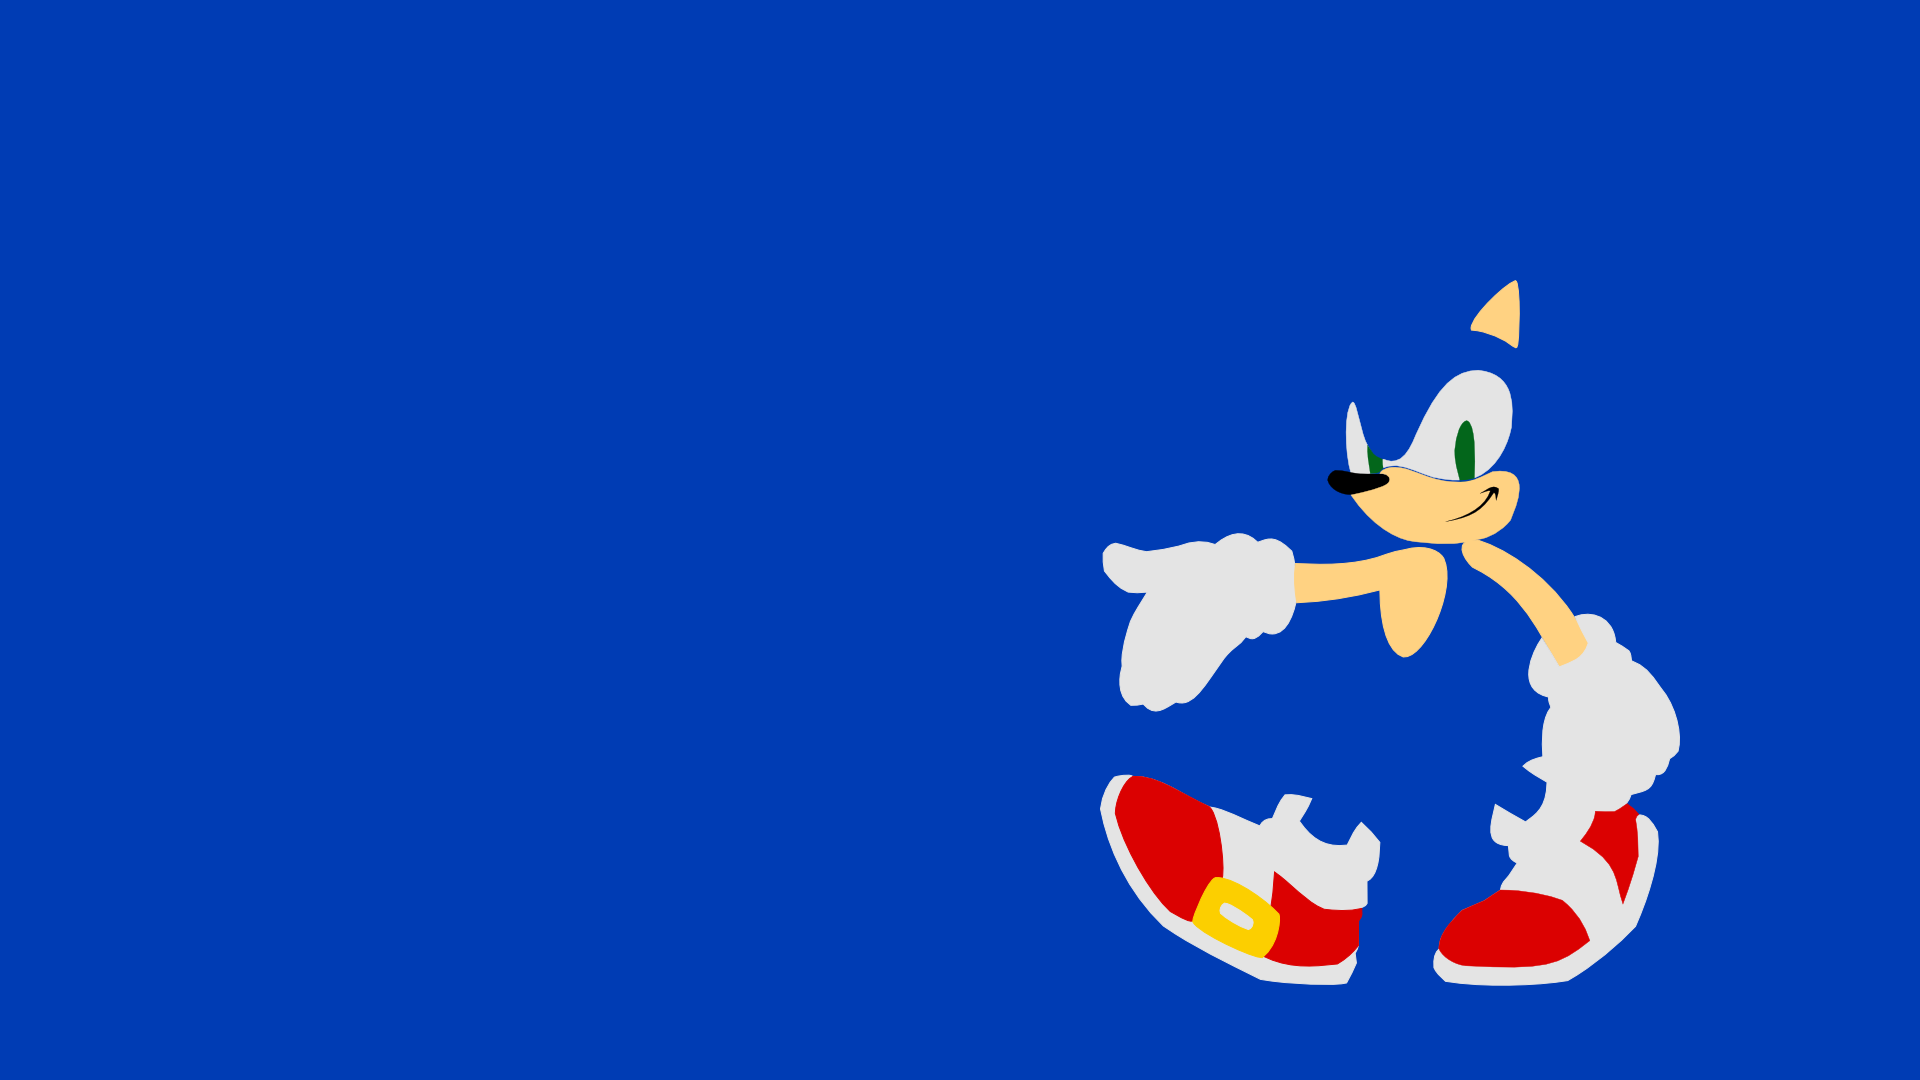 Collection of Cool Sonic Wallpapers on HDWallpapers